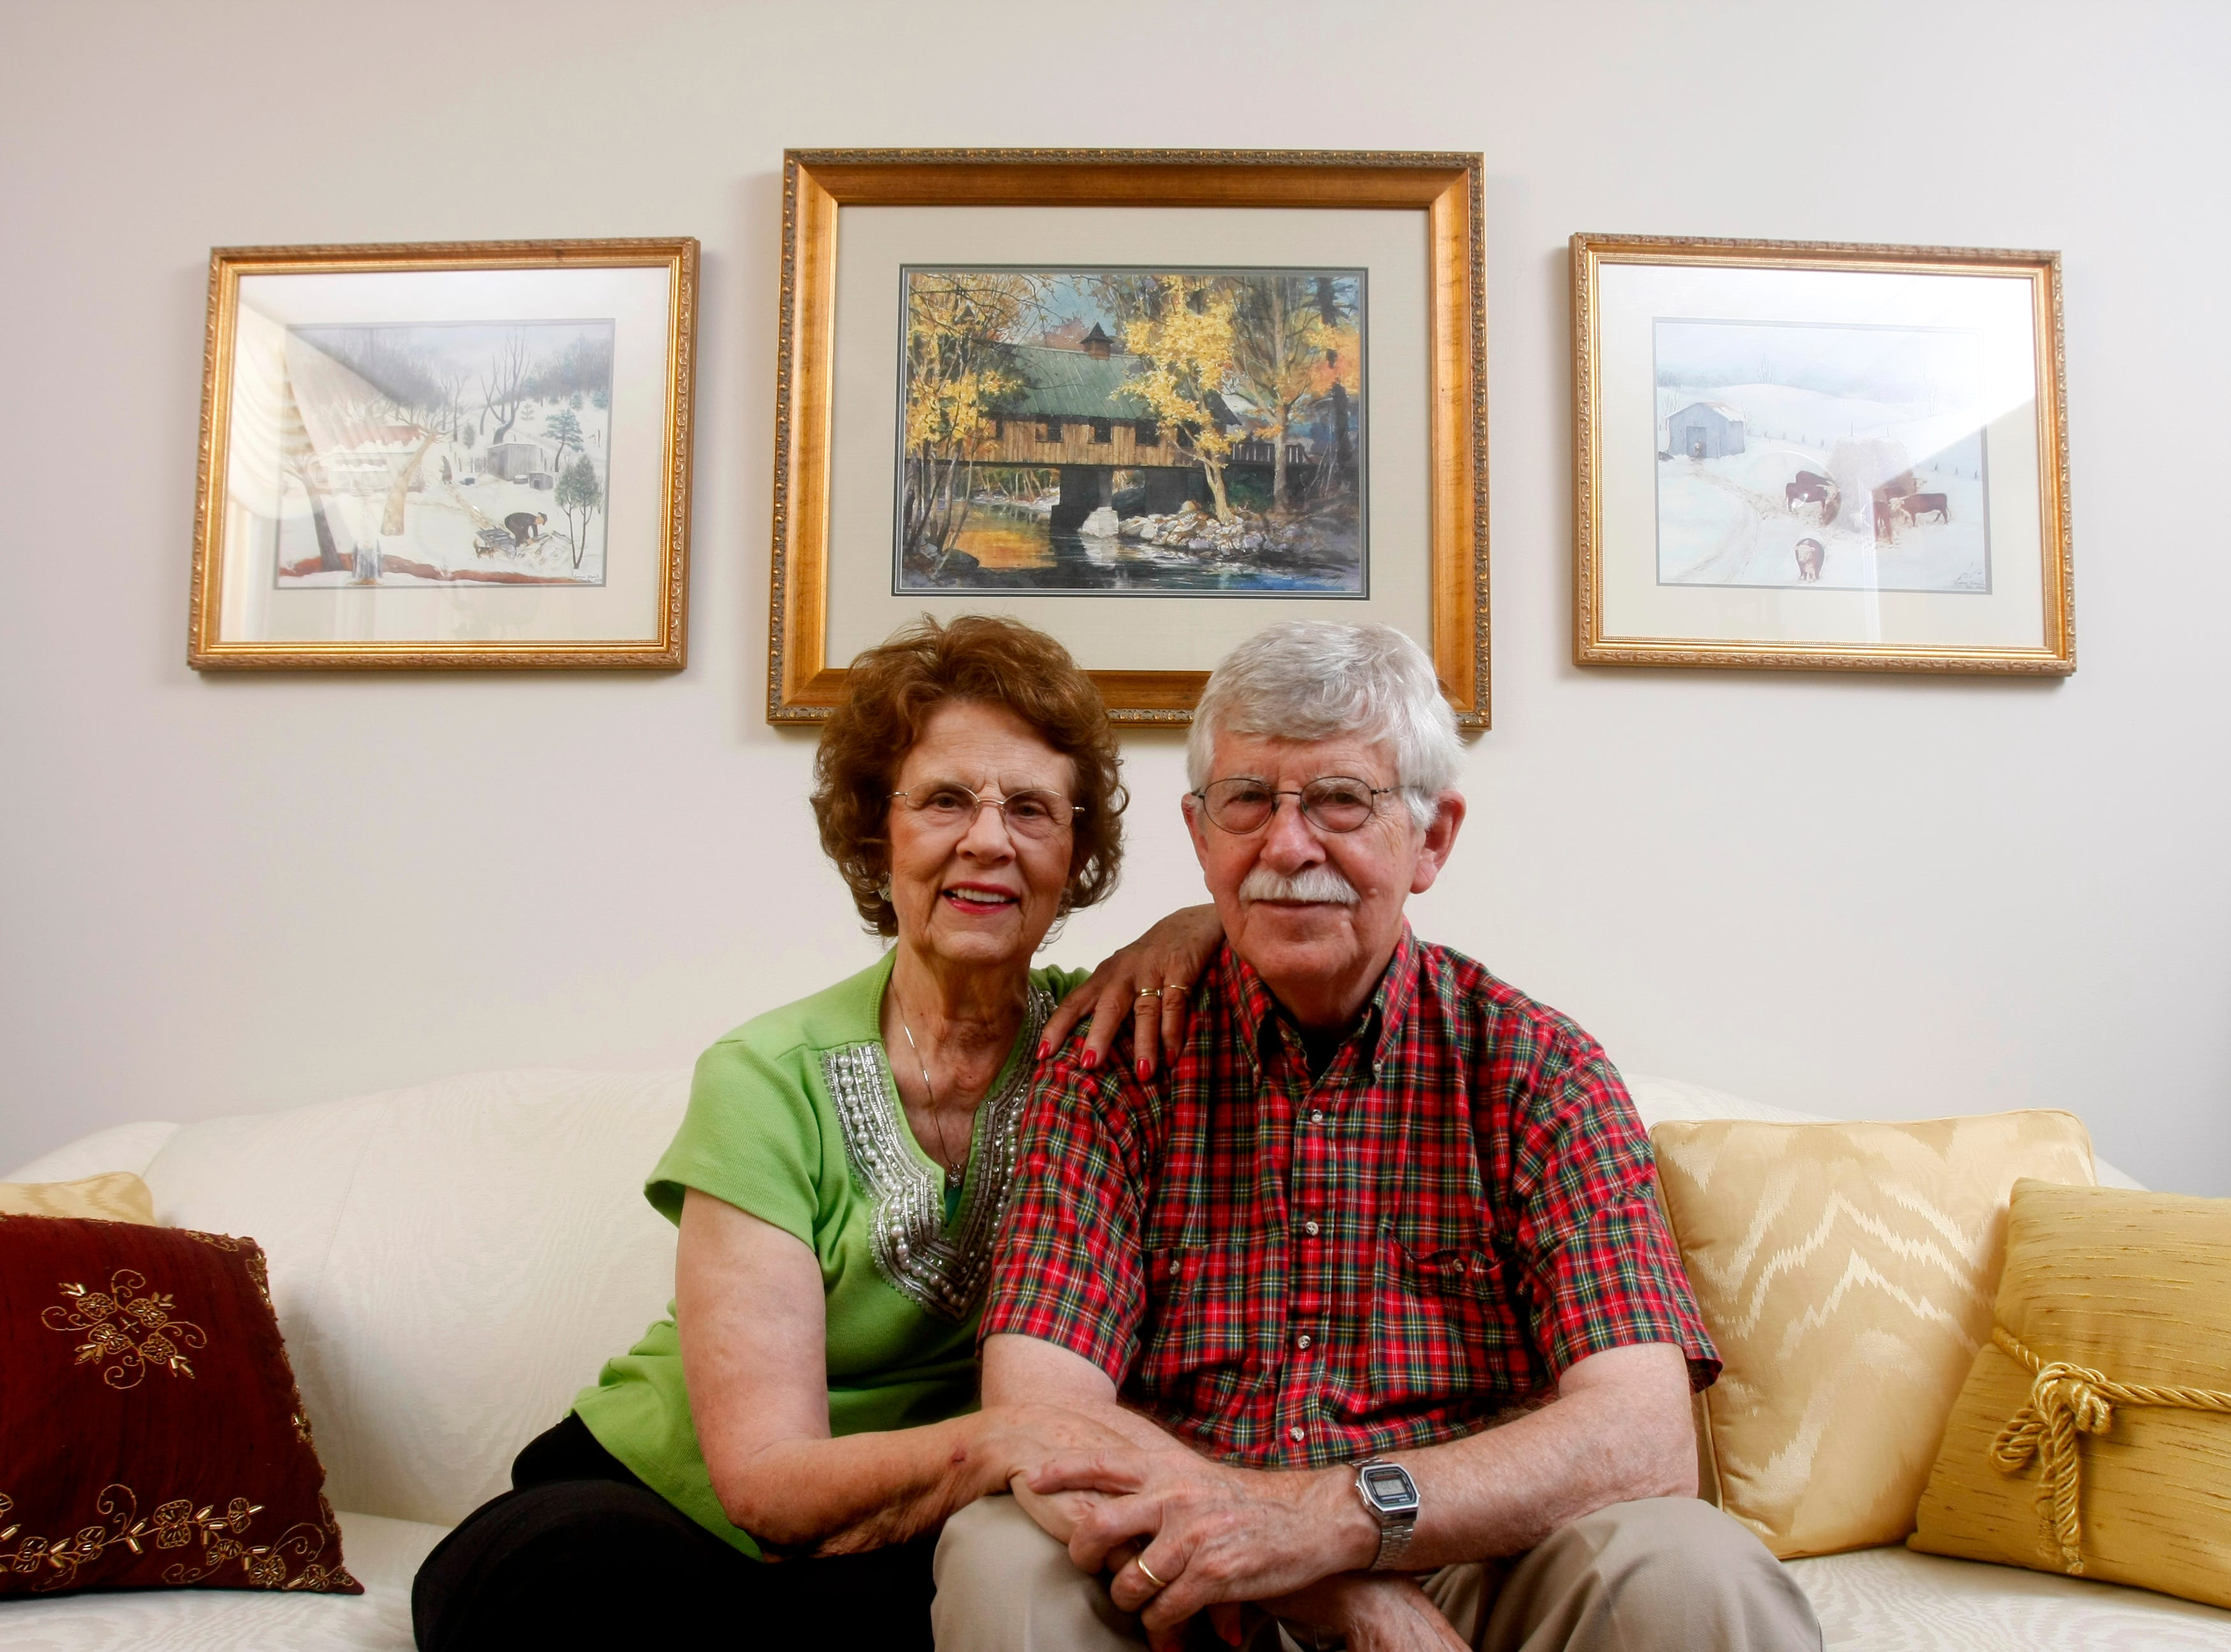 Patsy and Charlie Daniel sit together on the couch in their living room. Charlie and his wife moved to Knoxville 50 years ago for Charlie to take a job as a cartoonist for The Knoxville Journal.  The couple have been married for 54 years. Thursday ,July 3, 2008